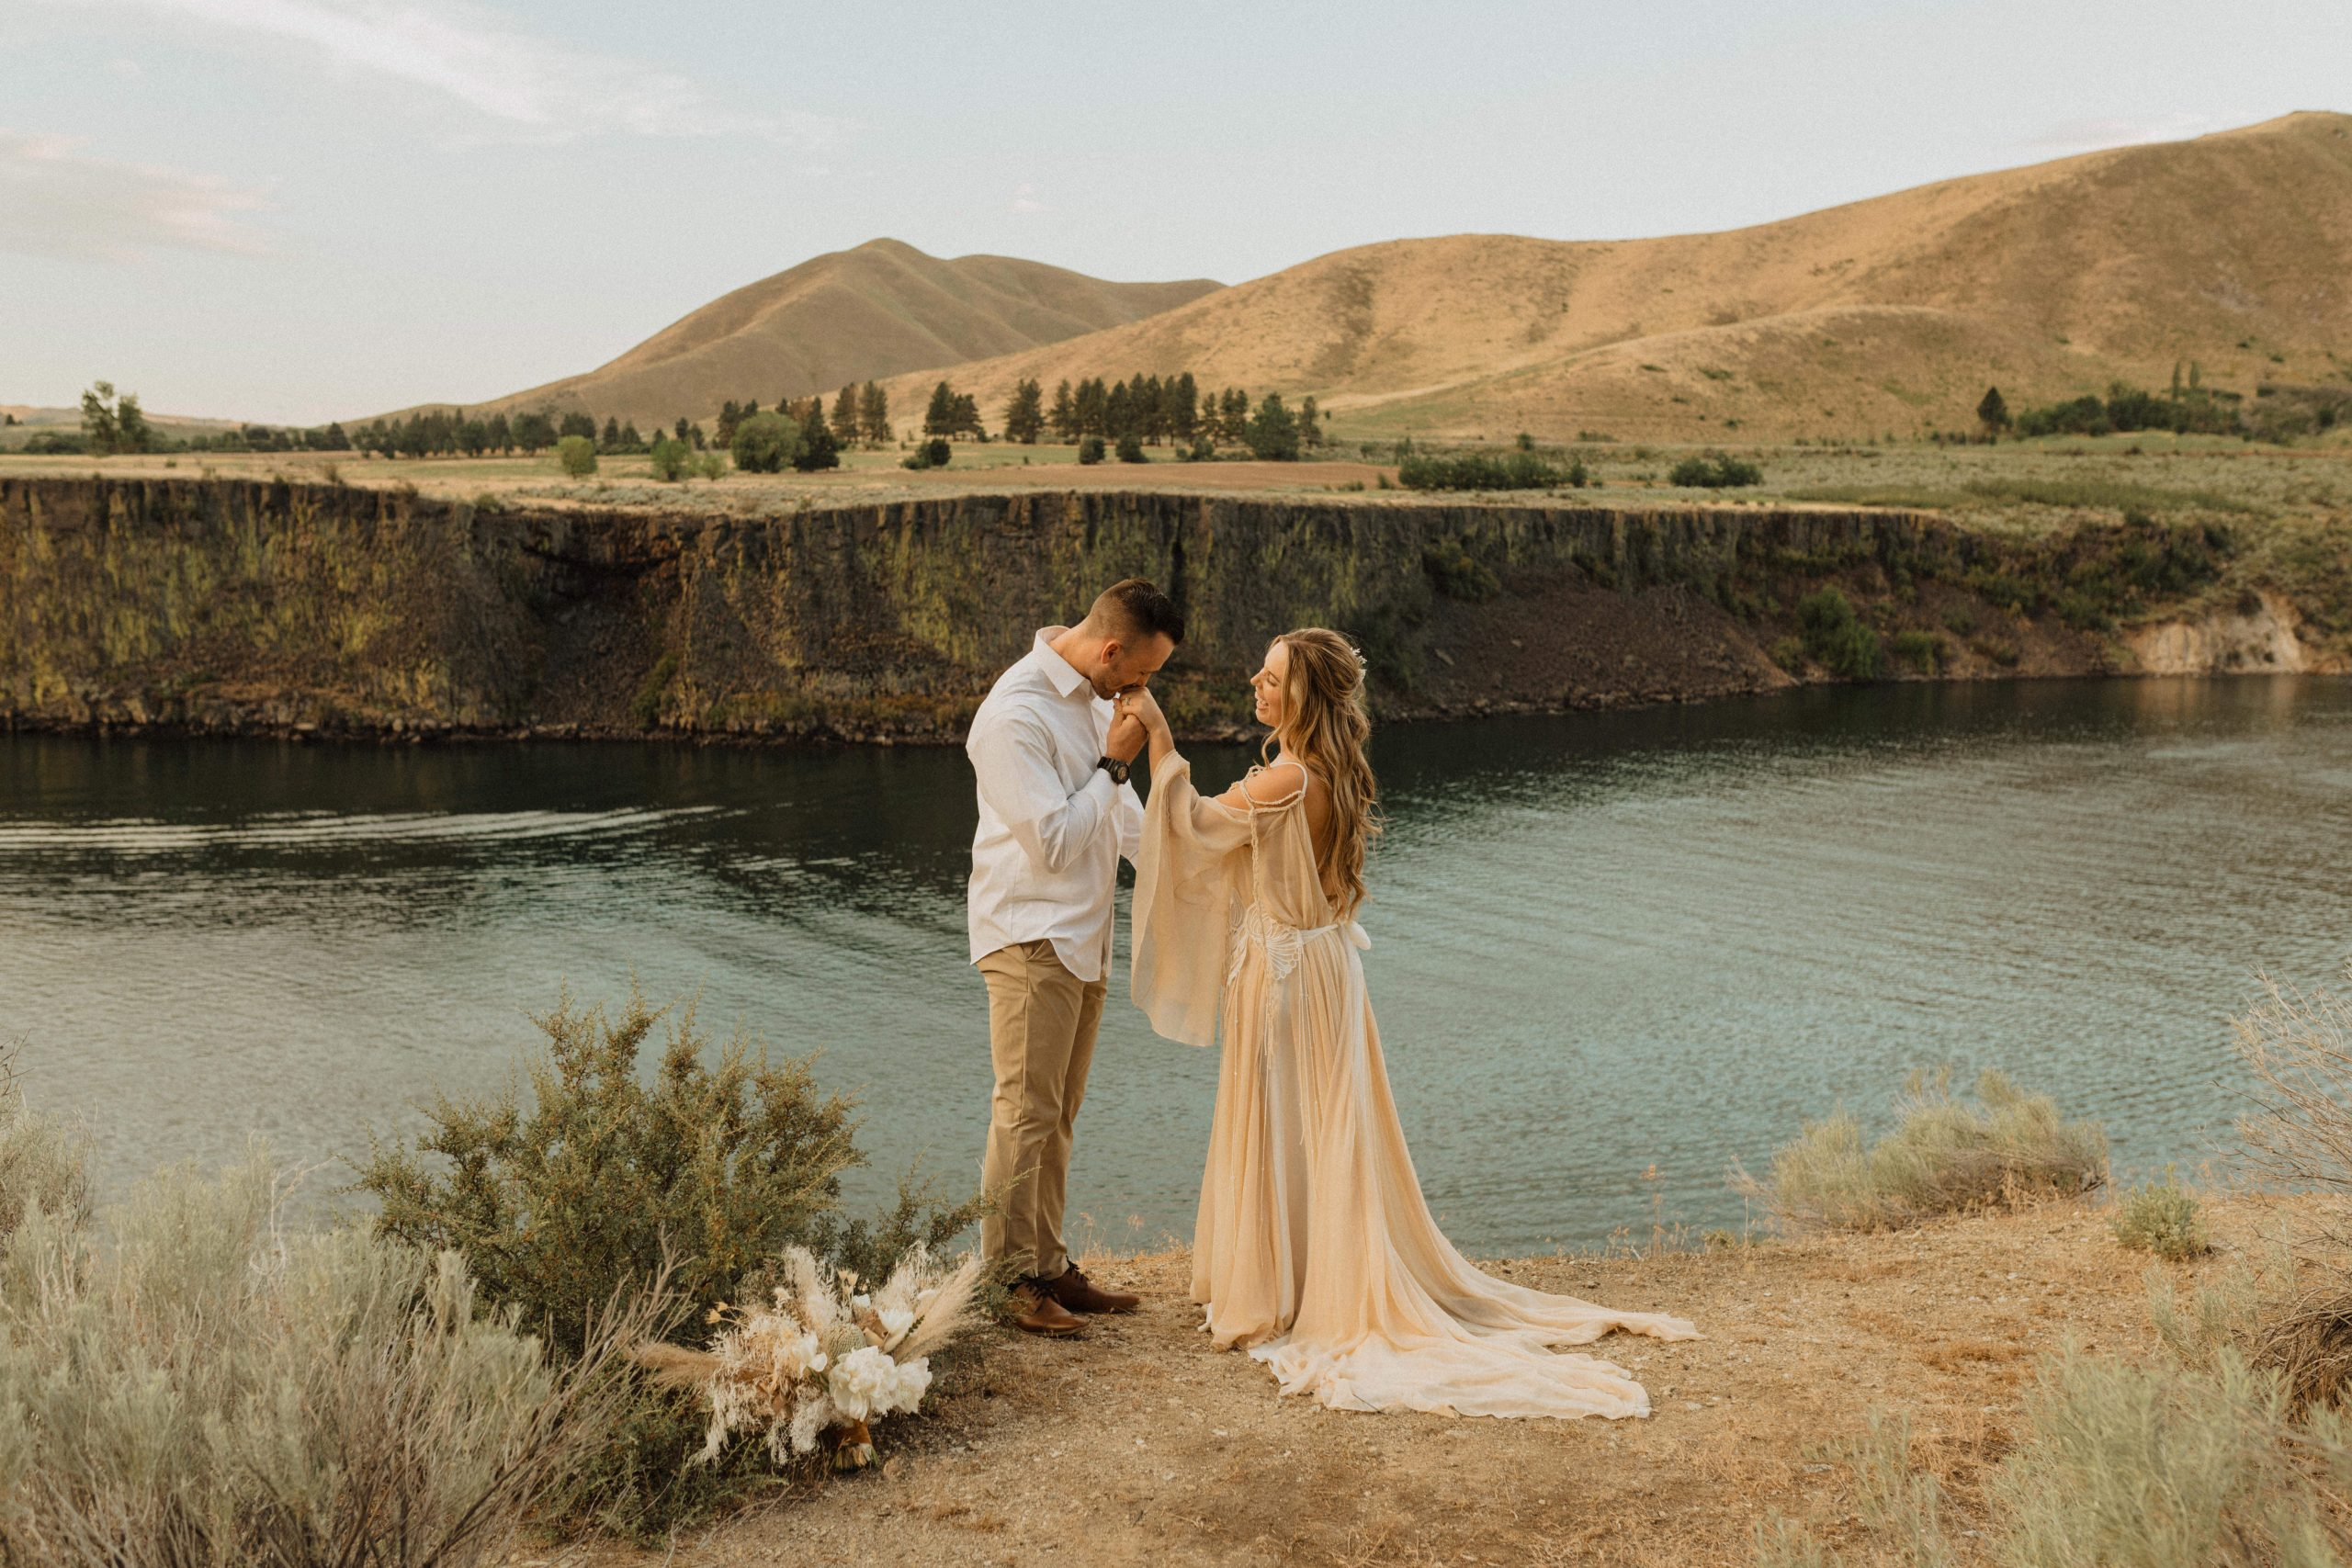 Groom takes bride's hand in his and gives it a light kiss during their elopement at Boise National Forest, captured by Alexa Ann